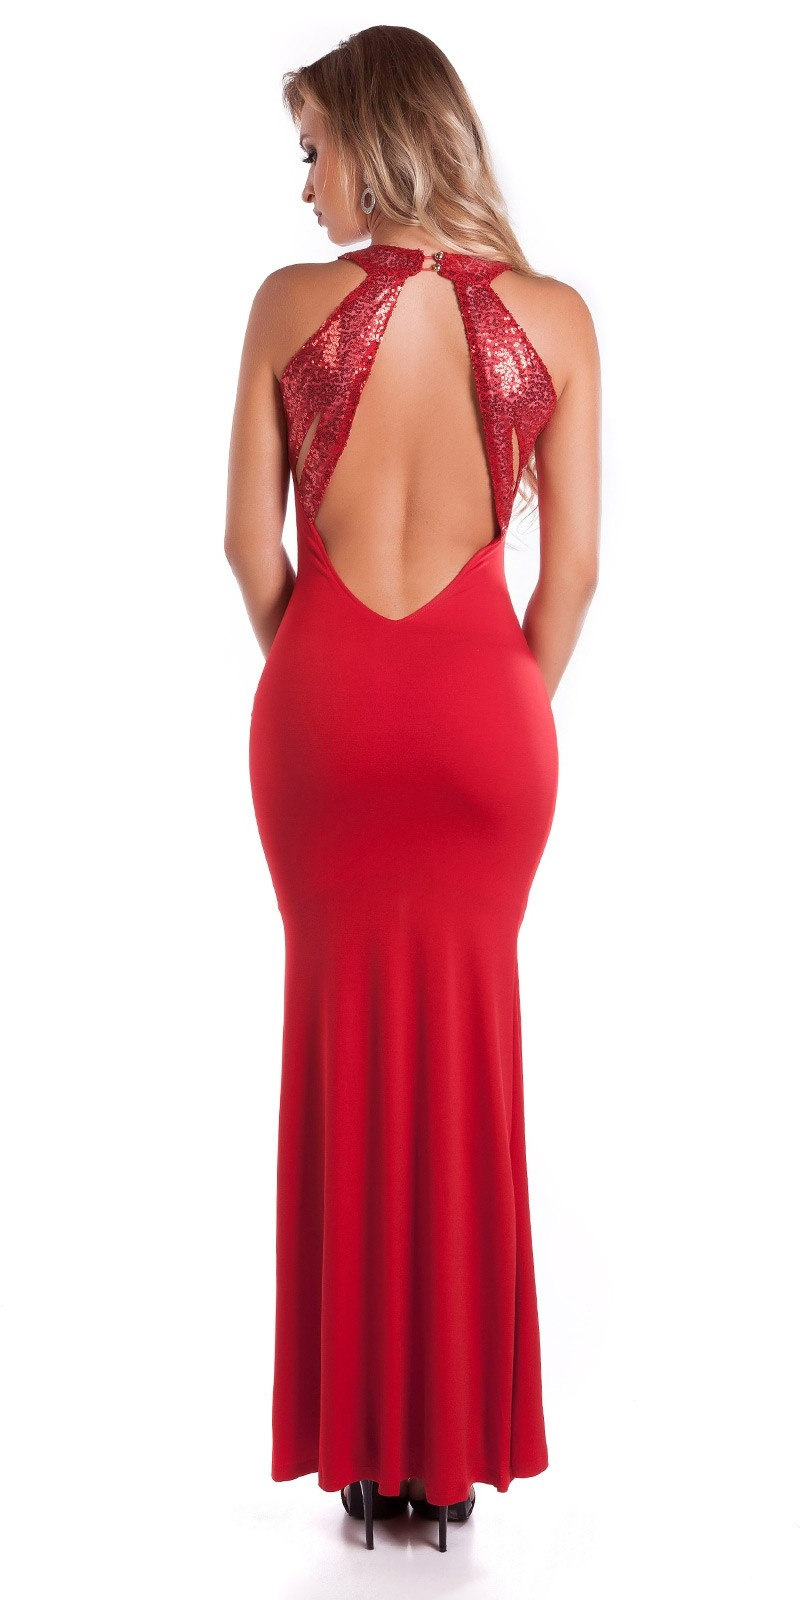 Red Carpet Look! Sexy KouCla dress with sequins Red